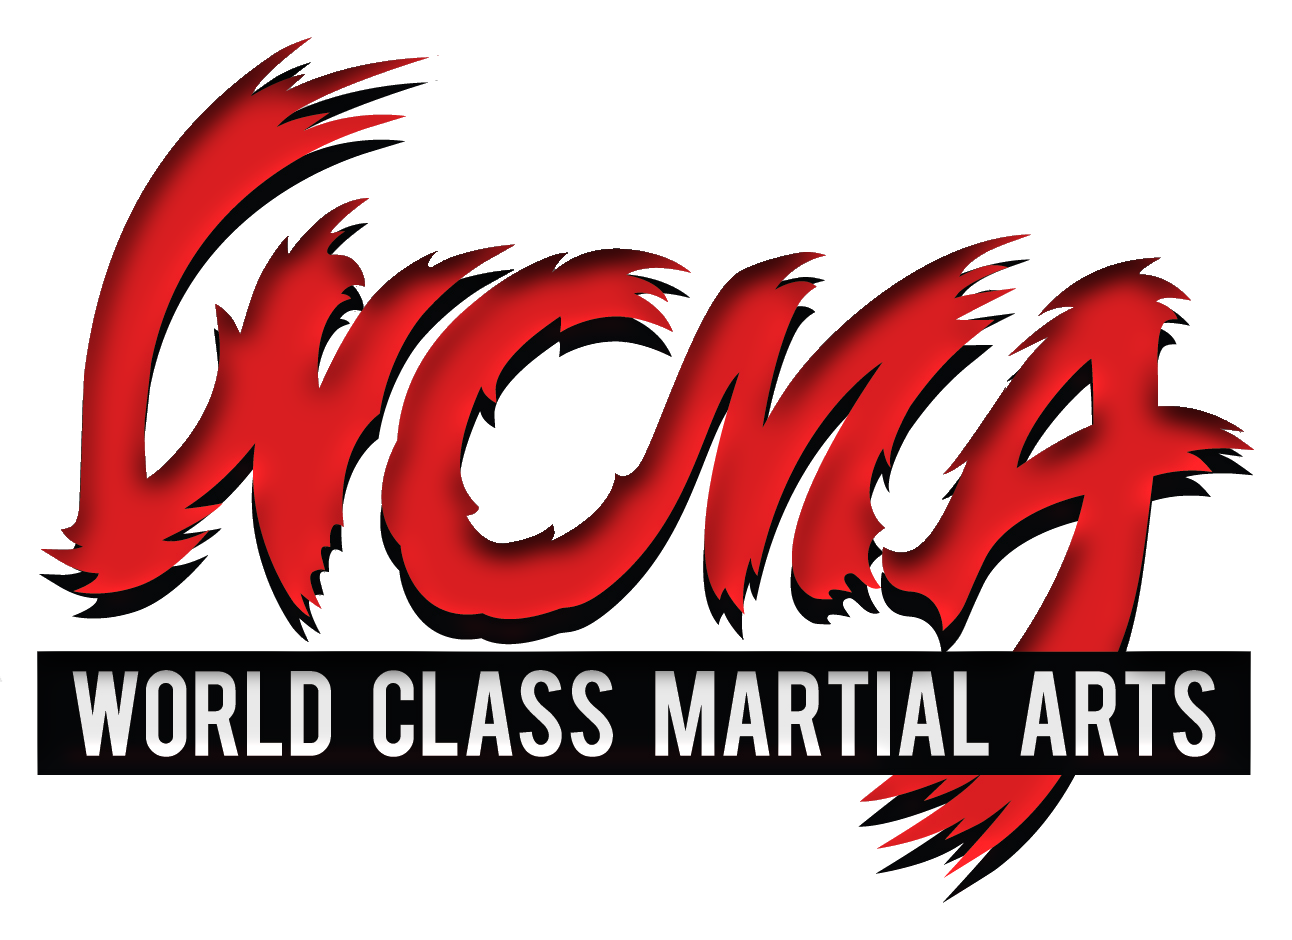 World Class Martial Arts